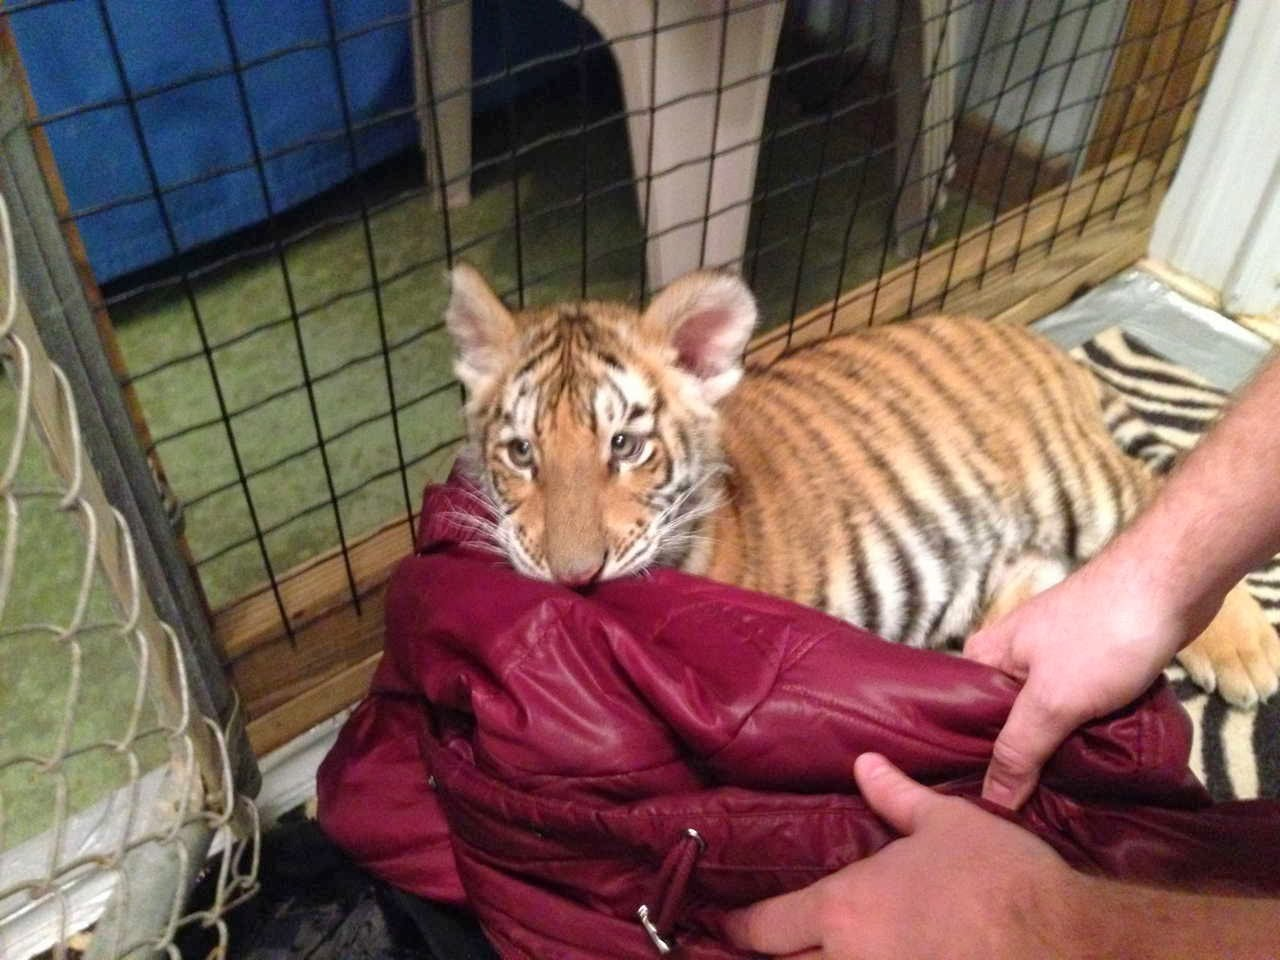 Funny animals of the week - 17 January 2014 (40 pics), baby tiger bites red jacket